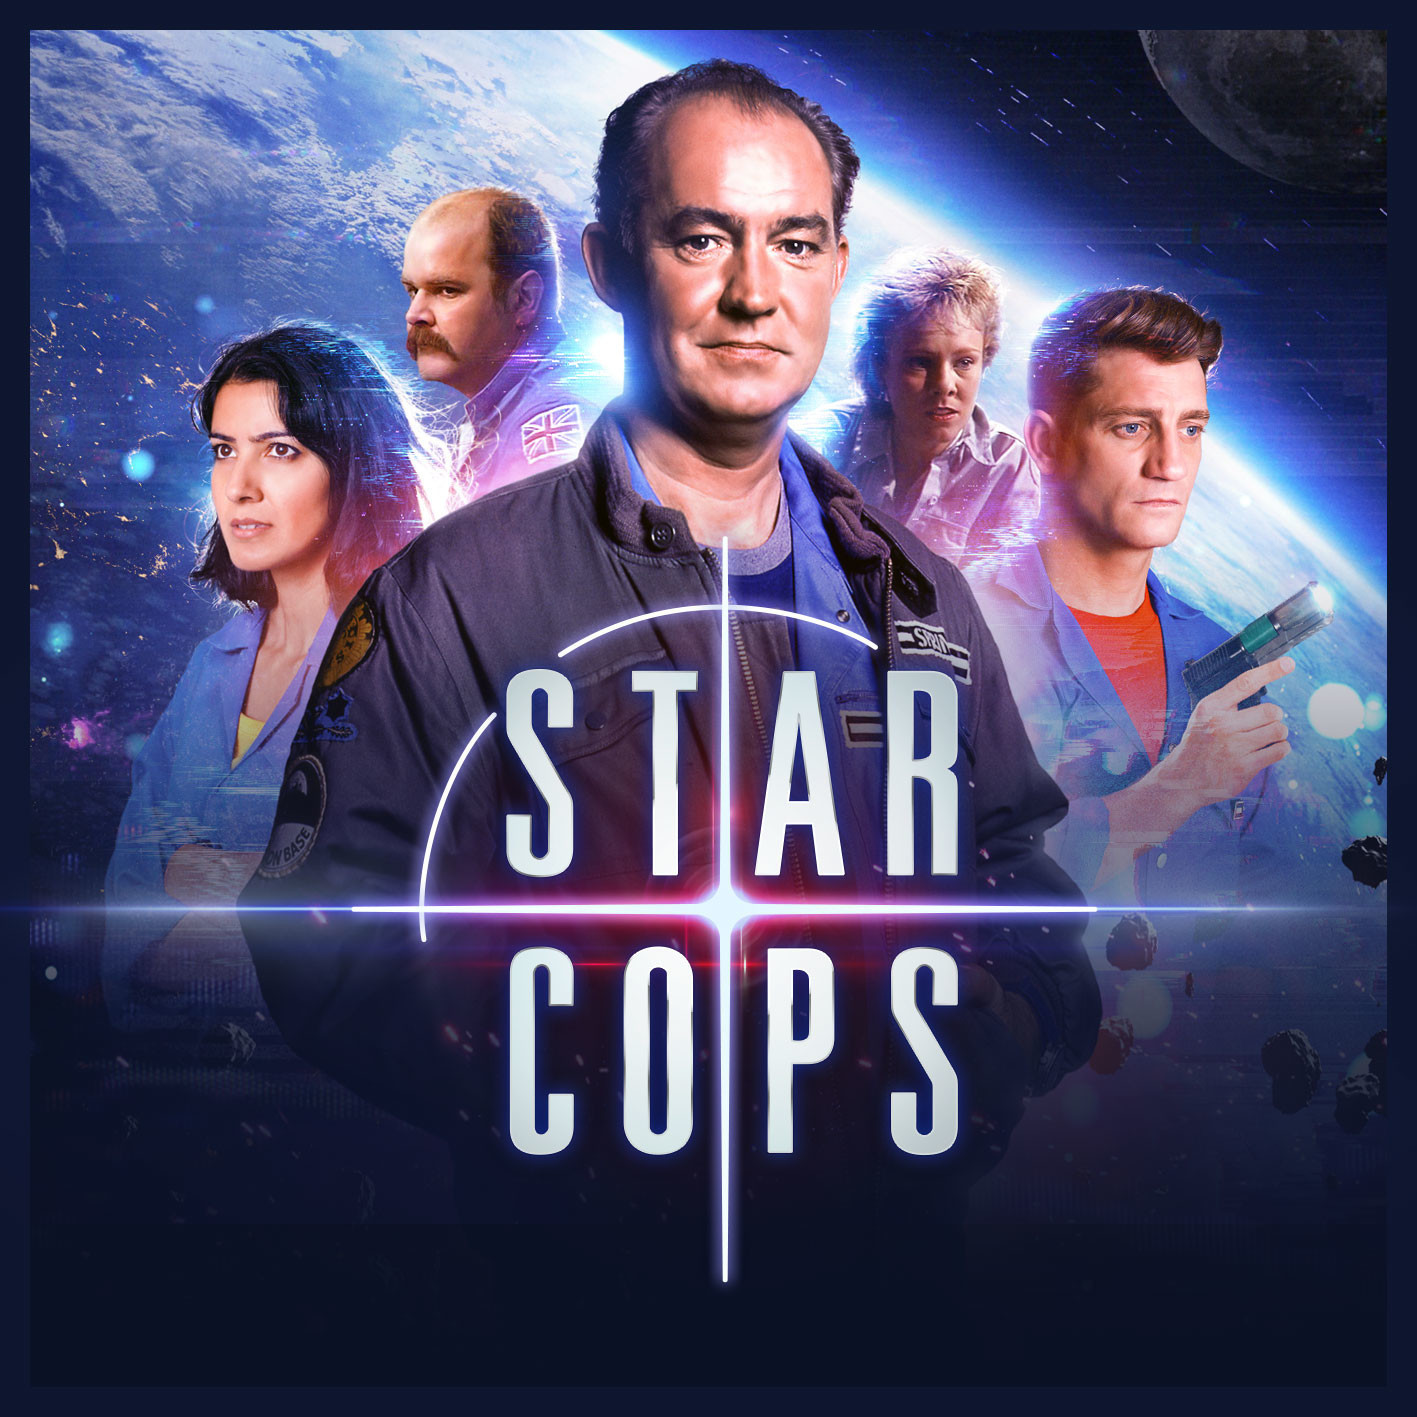 Star Cops - Mother Earth - Remixed with original theme tune - Big Finish